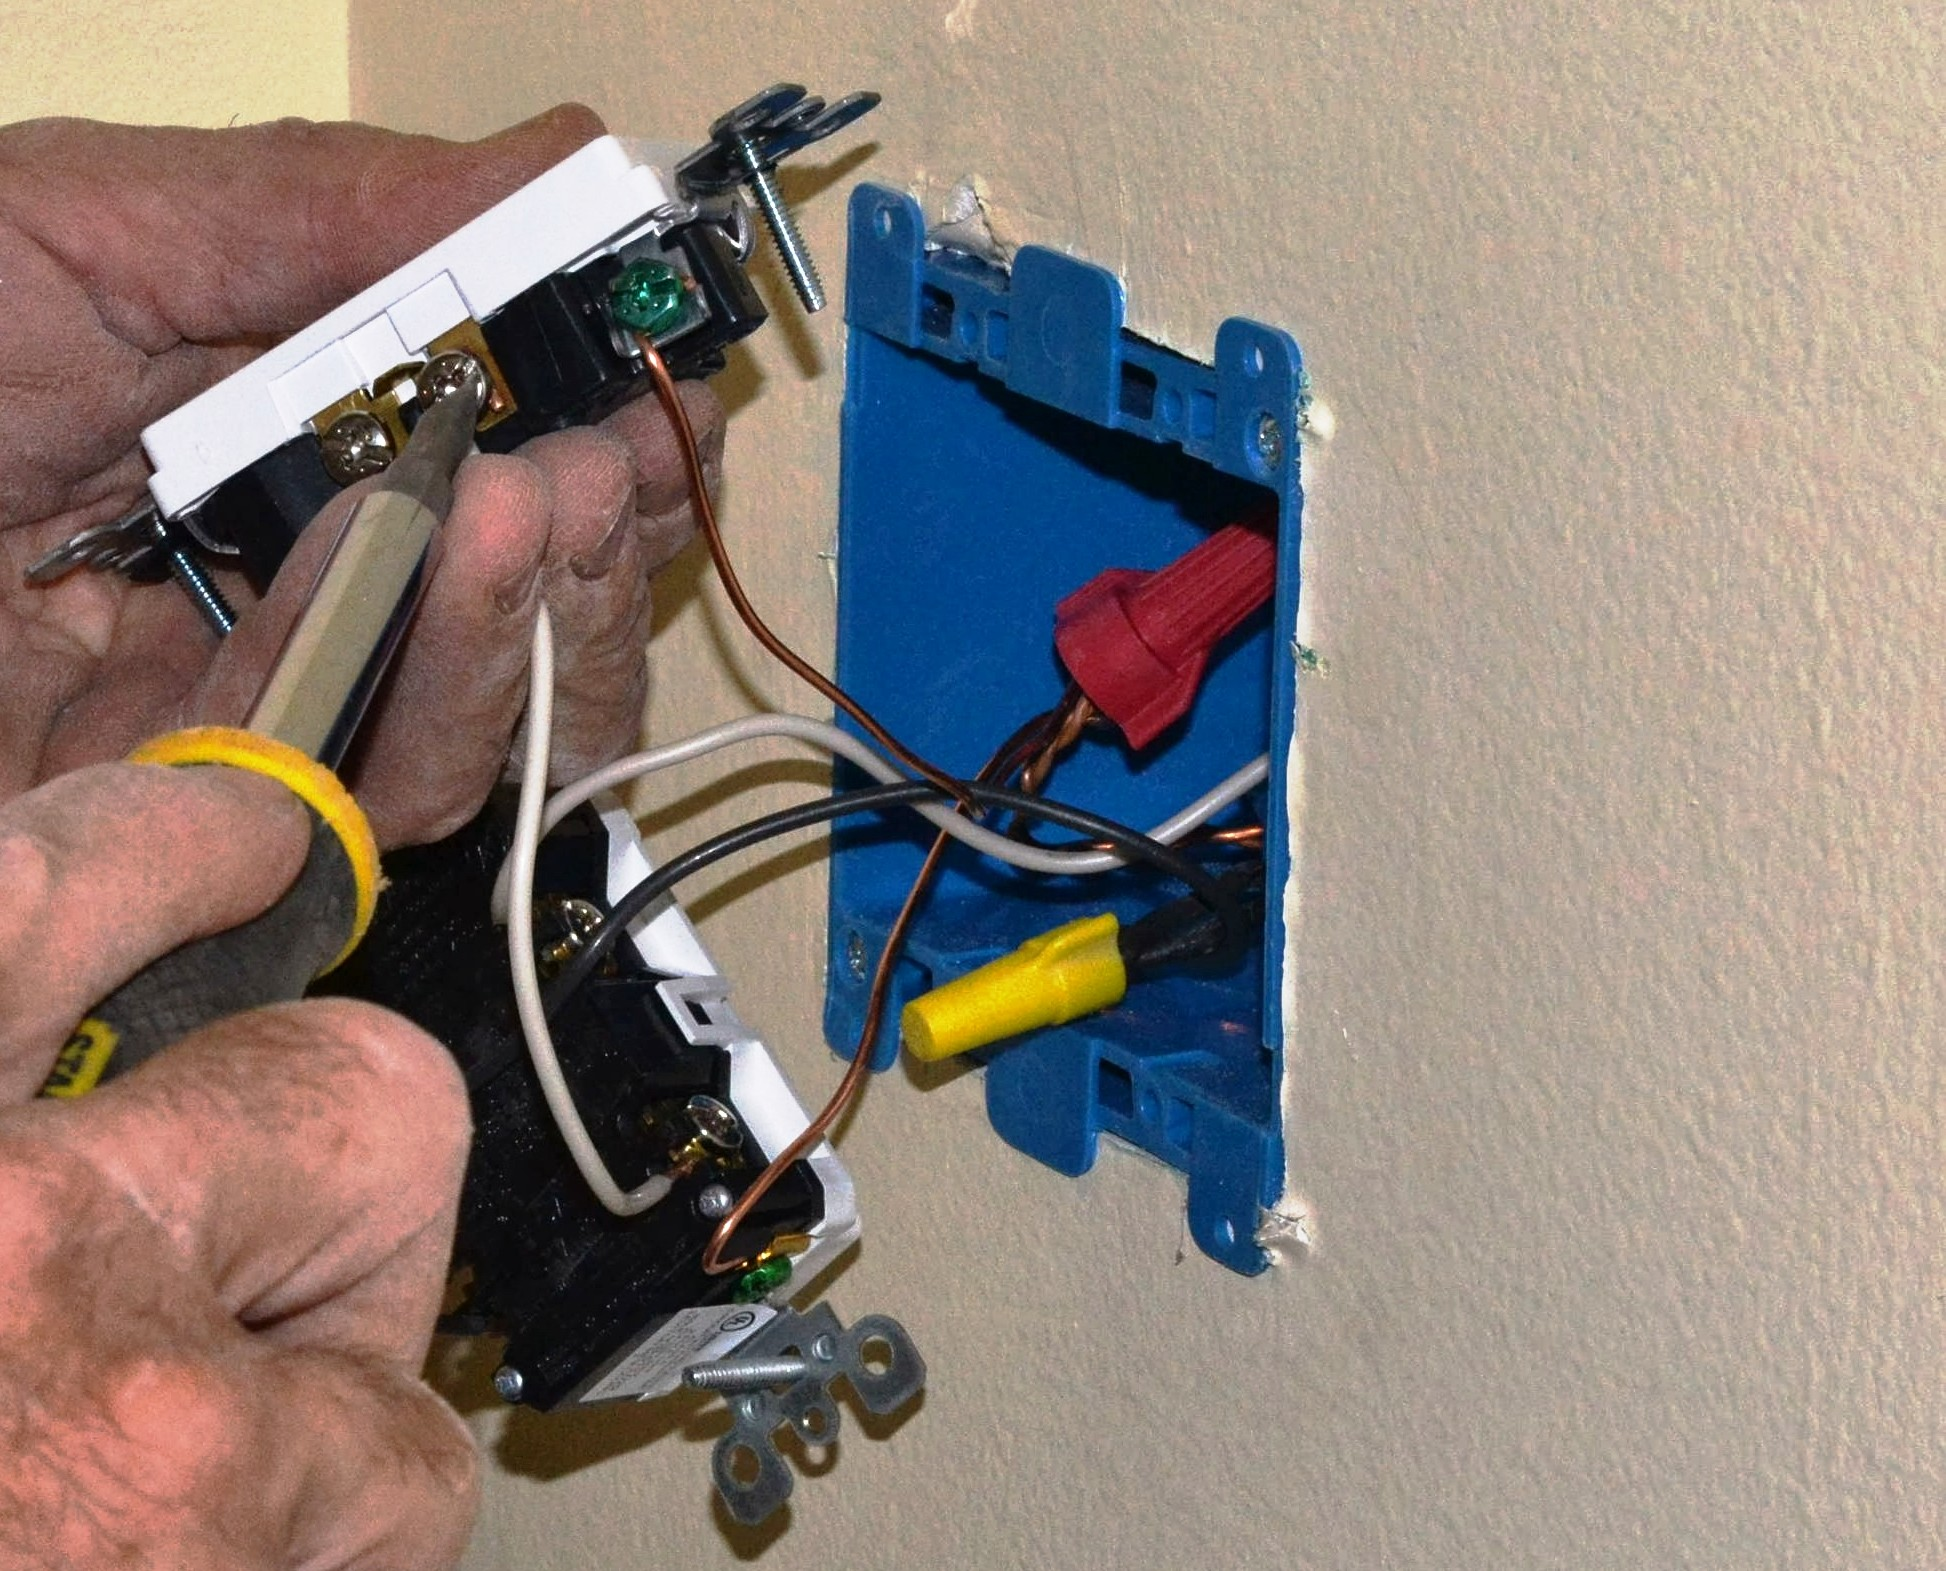 Converting a 2 socket outlet to 4 sockets|Pro Construction Guide